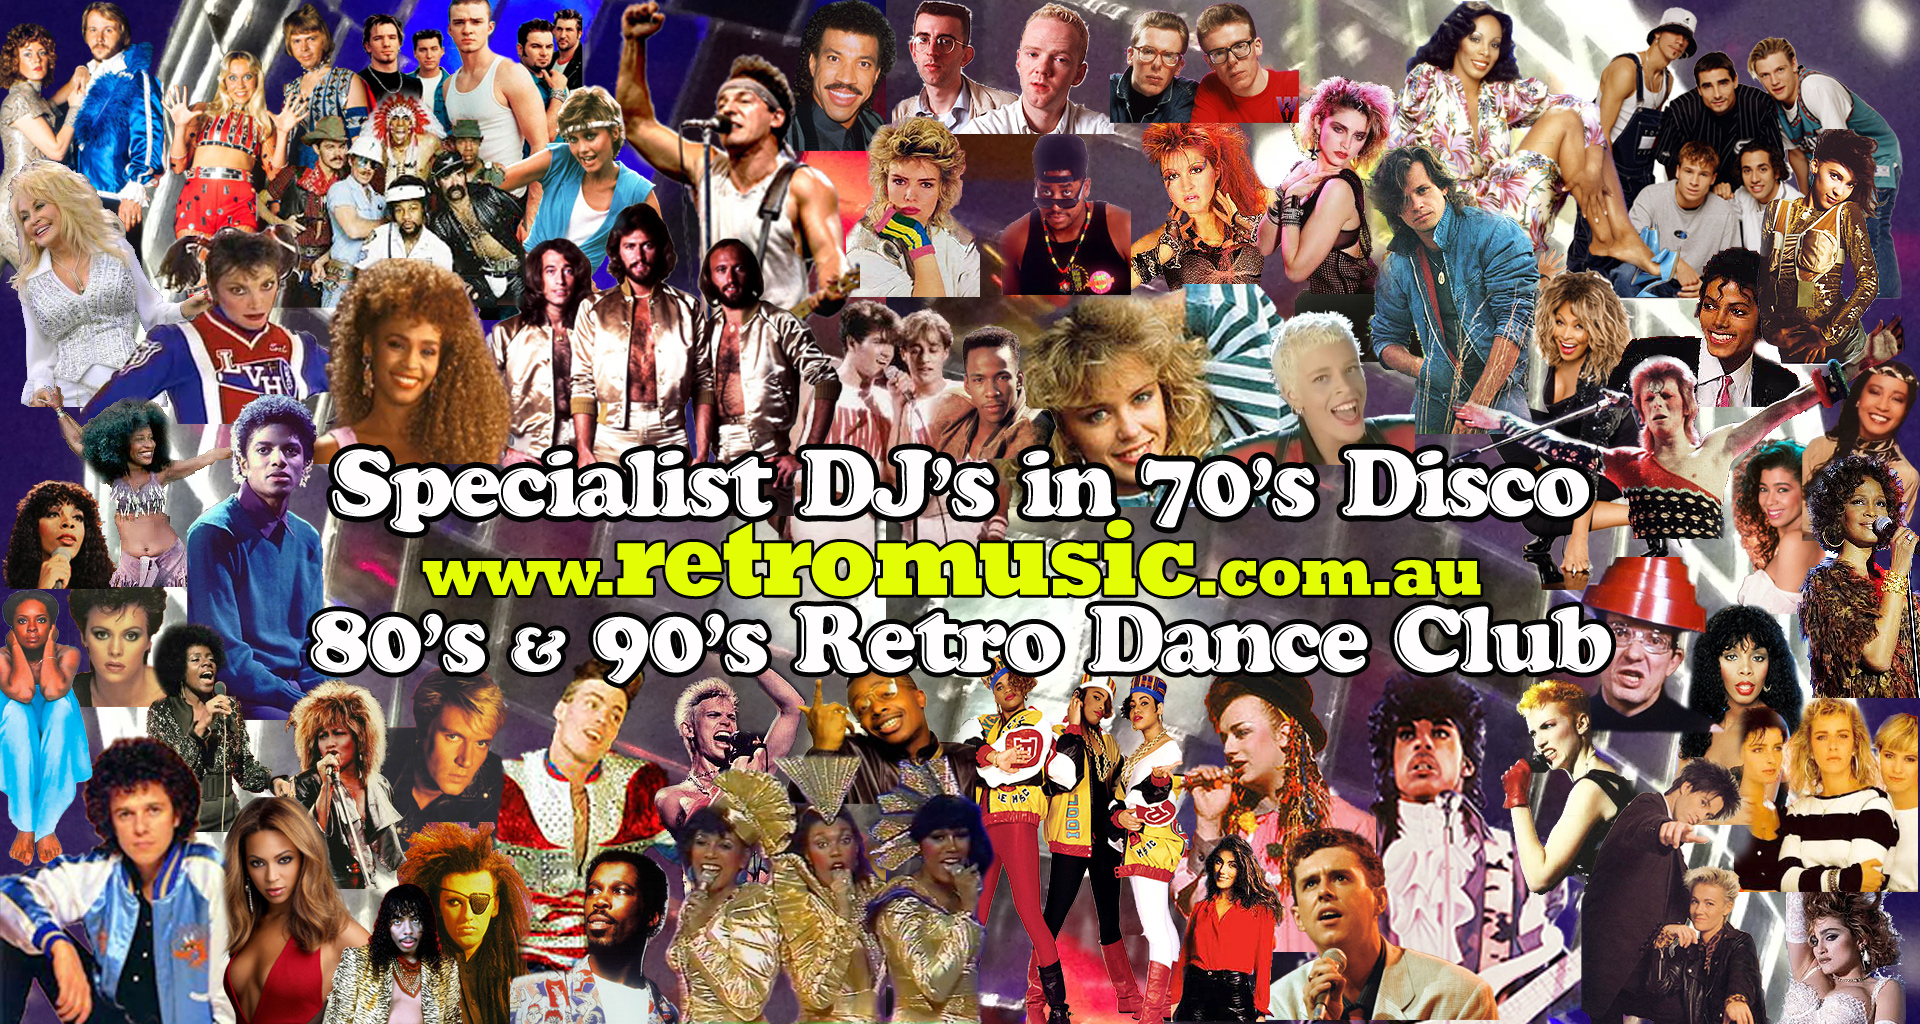 70s 80's and 90's Retro Dance